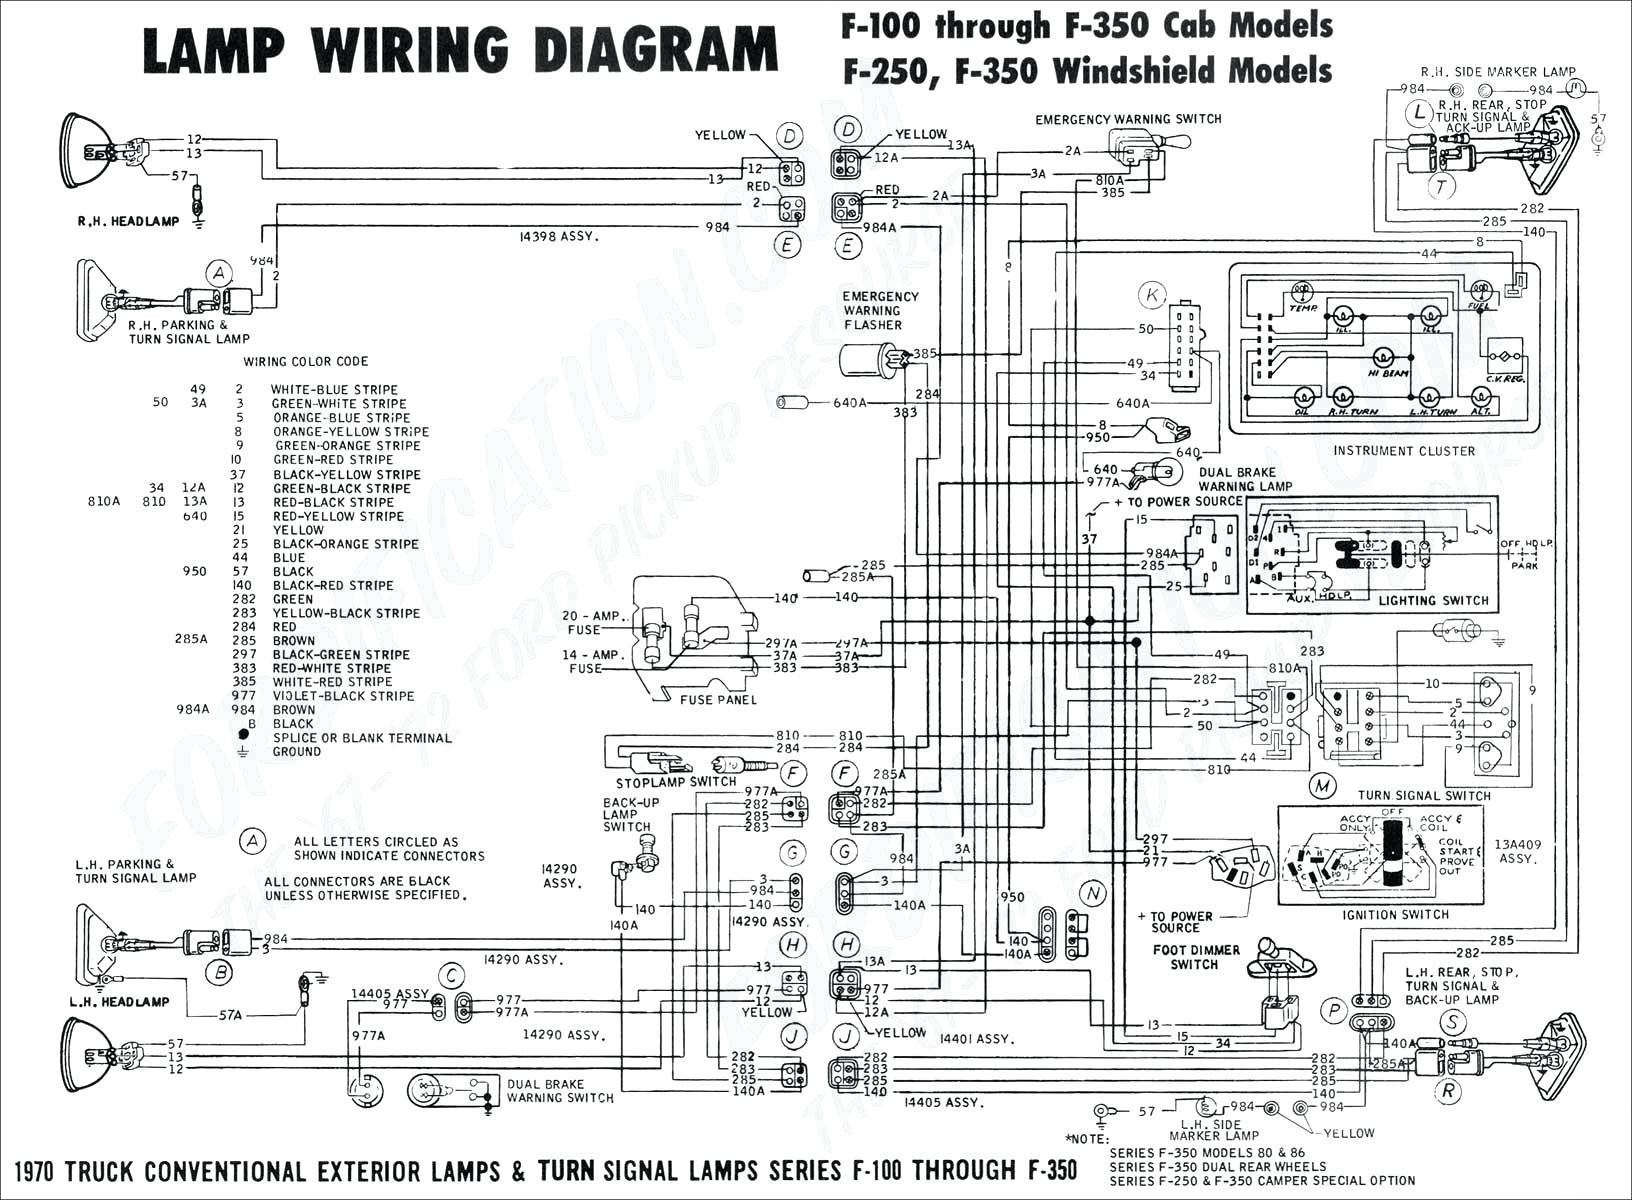 1978 f150 headlight wiring diagram schematics wiring diagrams u2022 rh seniorlivinguniversity co Ford Truck Electrical Diagrams Ford Truck Diagrams Online